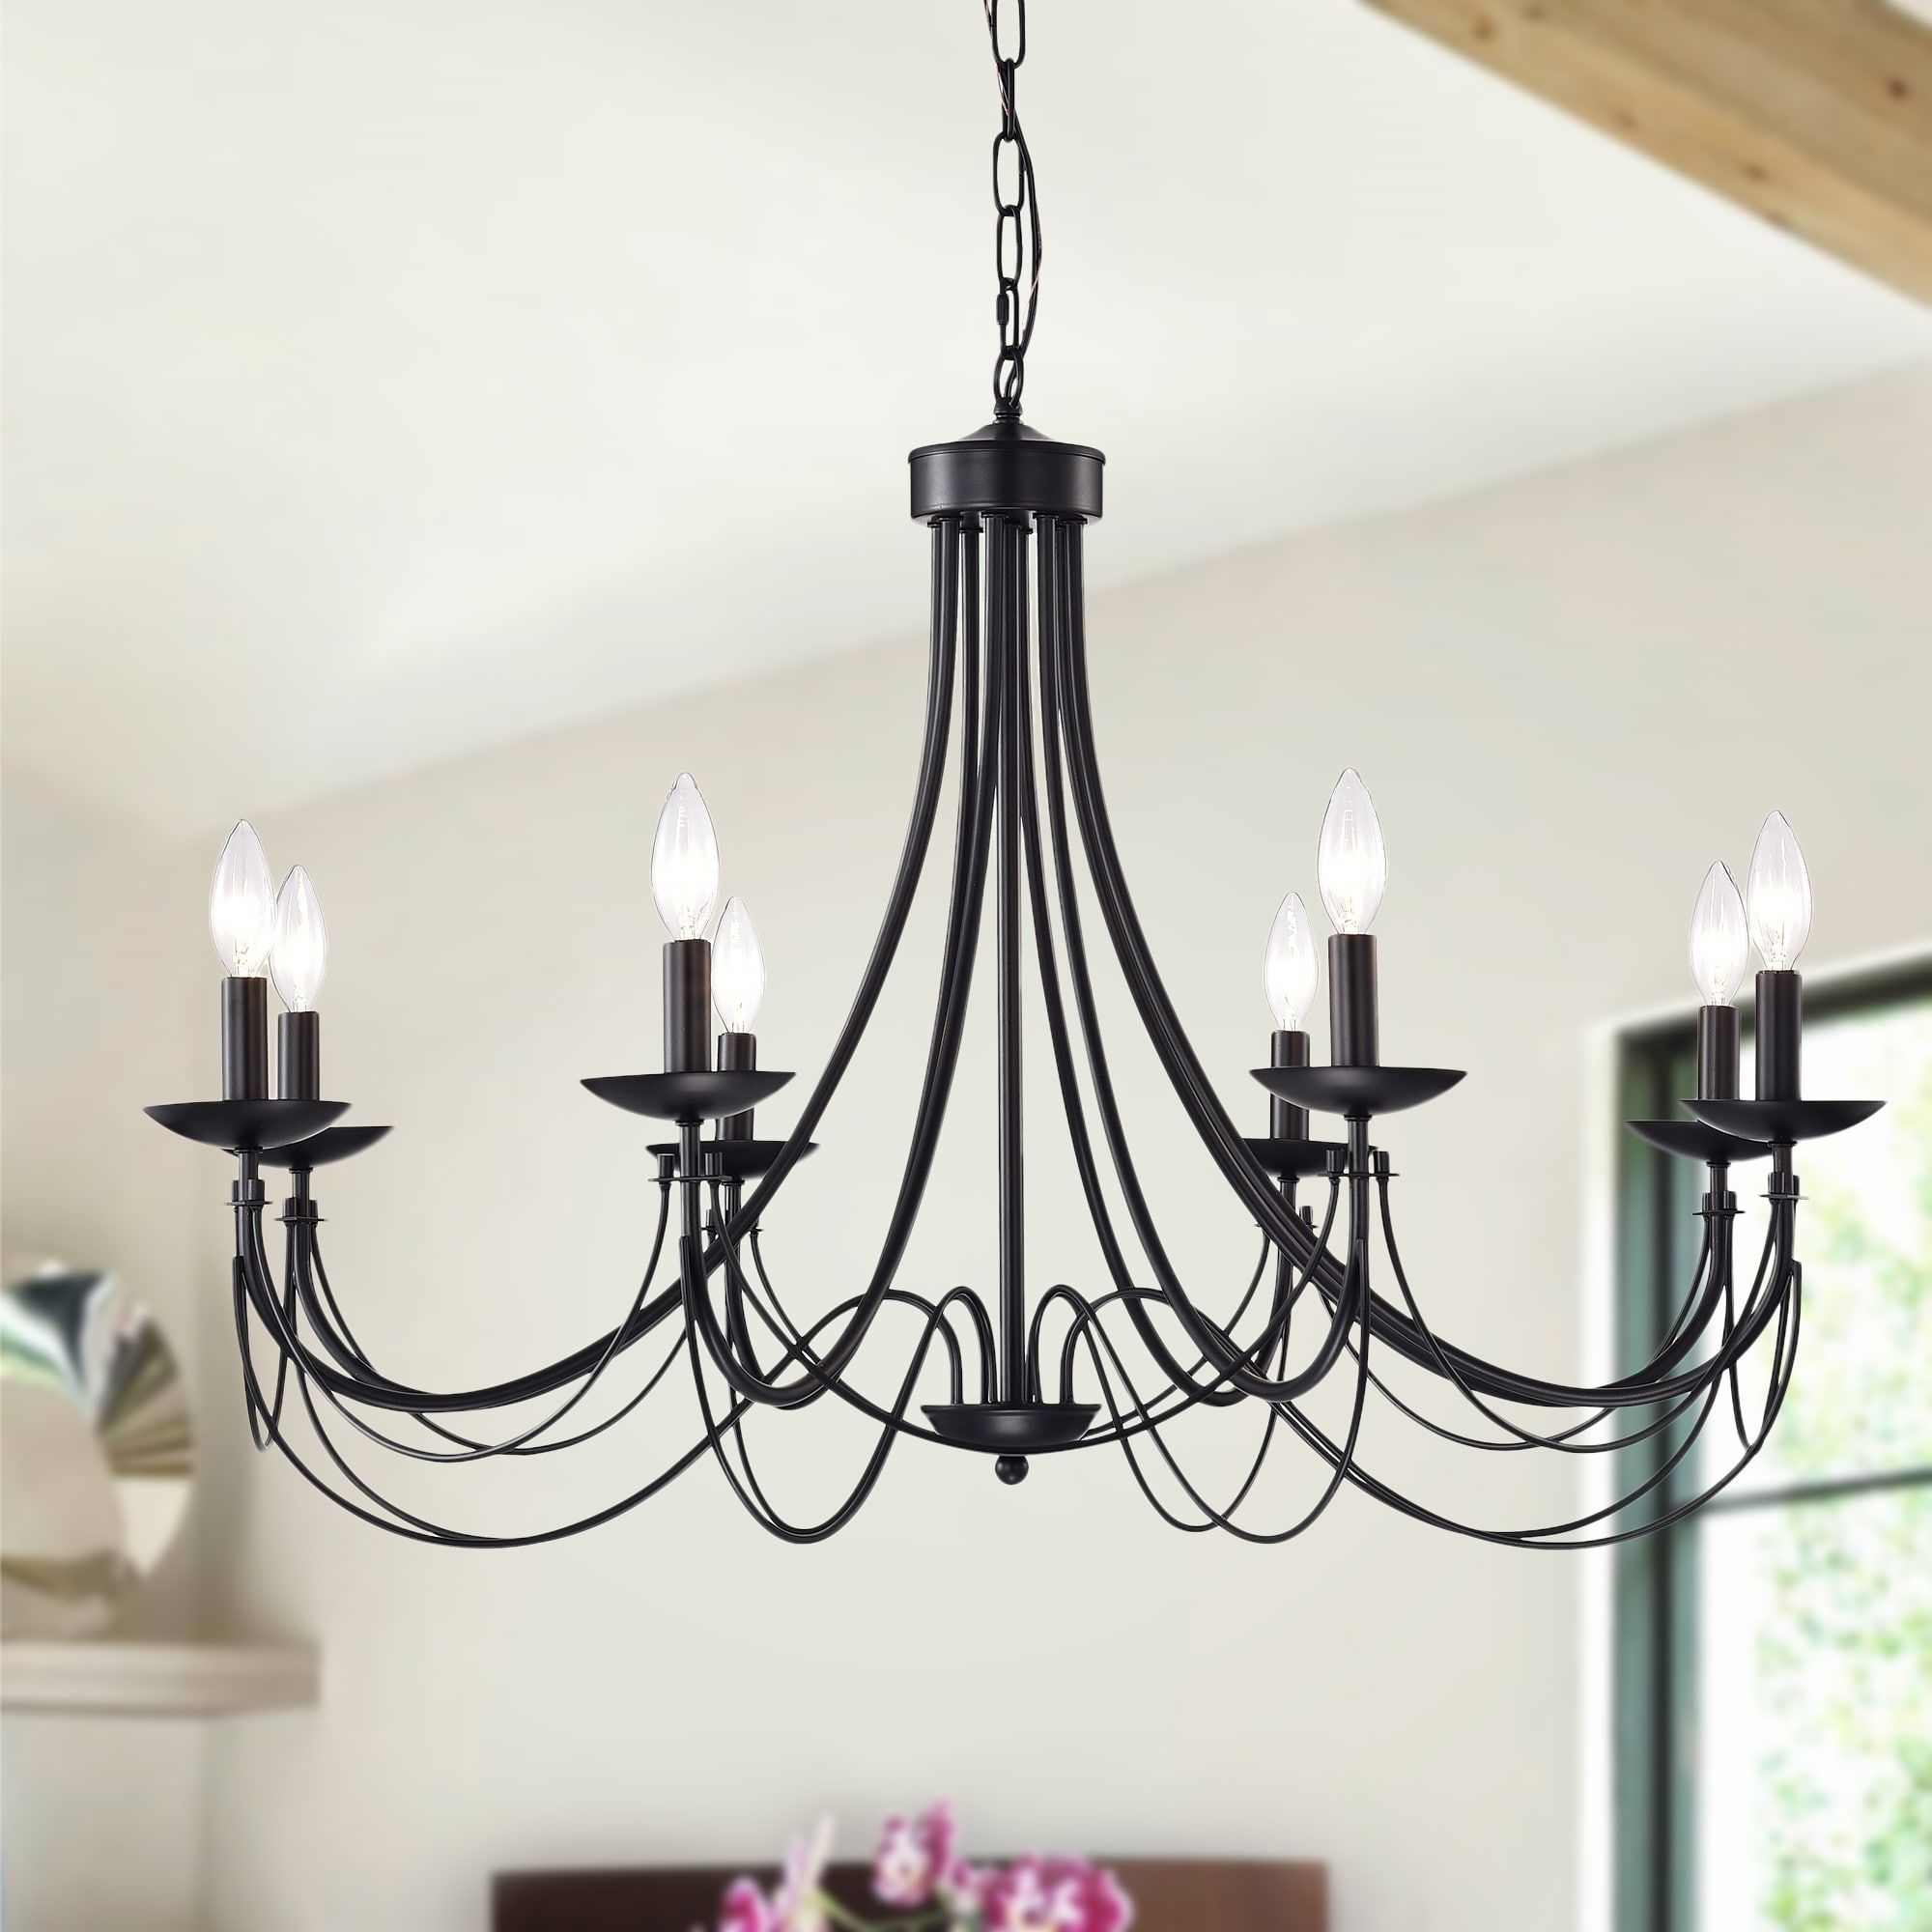 Clash 8 Light 35 Inch Matte Black Branched Chandelier With Regard To Shaylee 8 Light Candle Style Chandeliers (View 18 of 30)